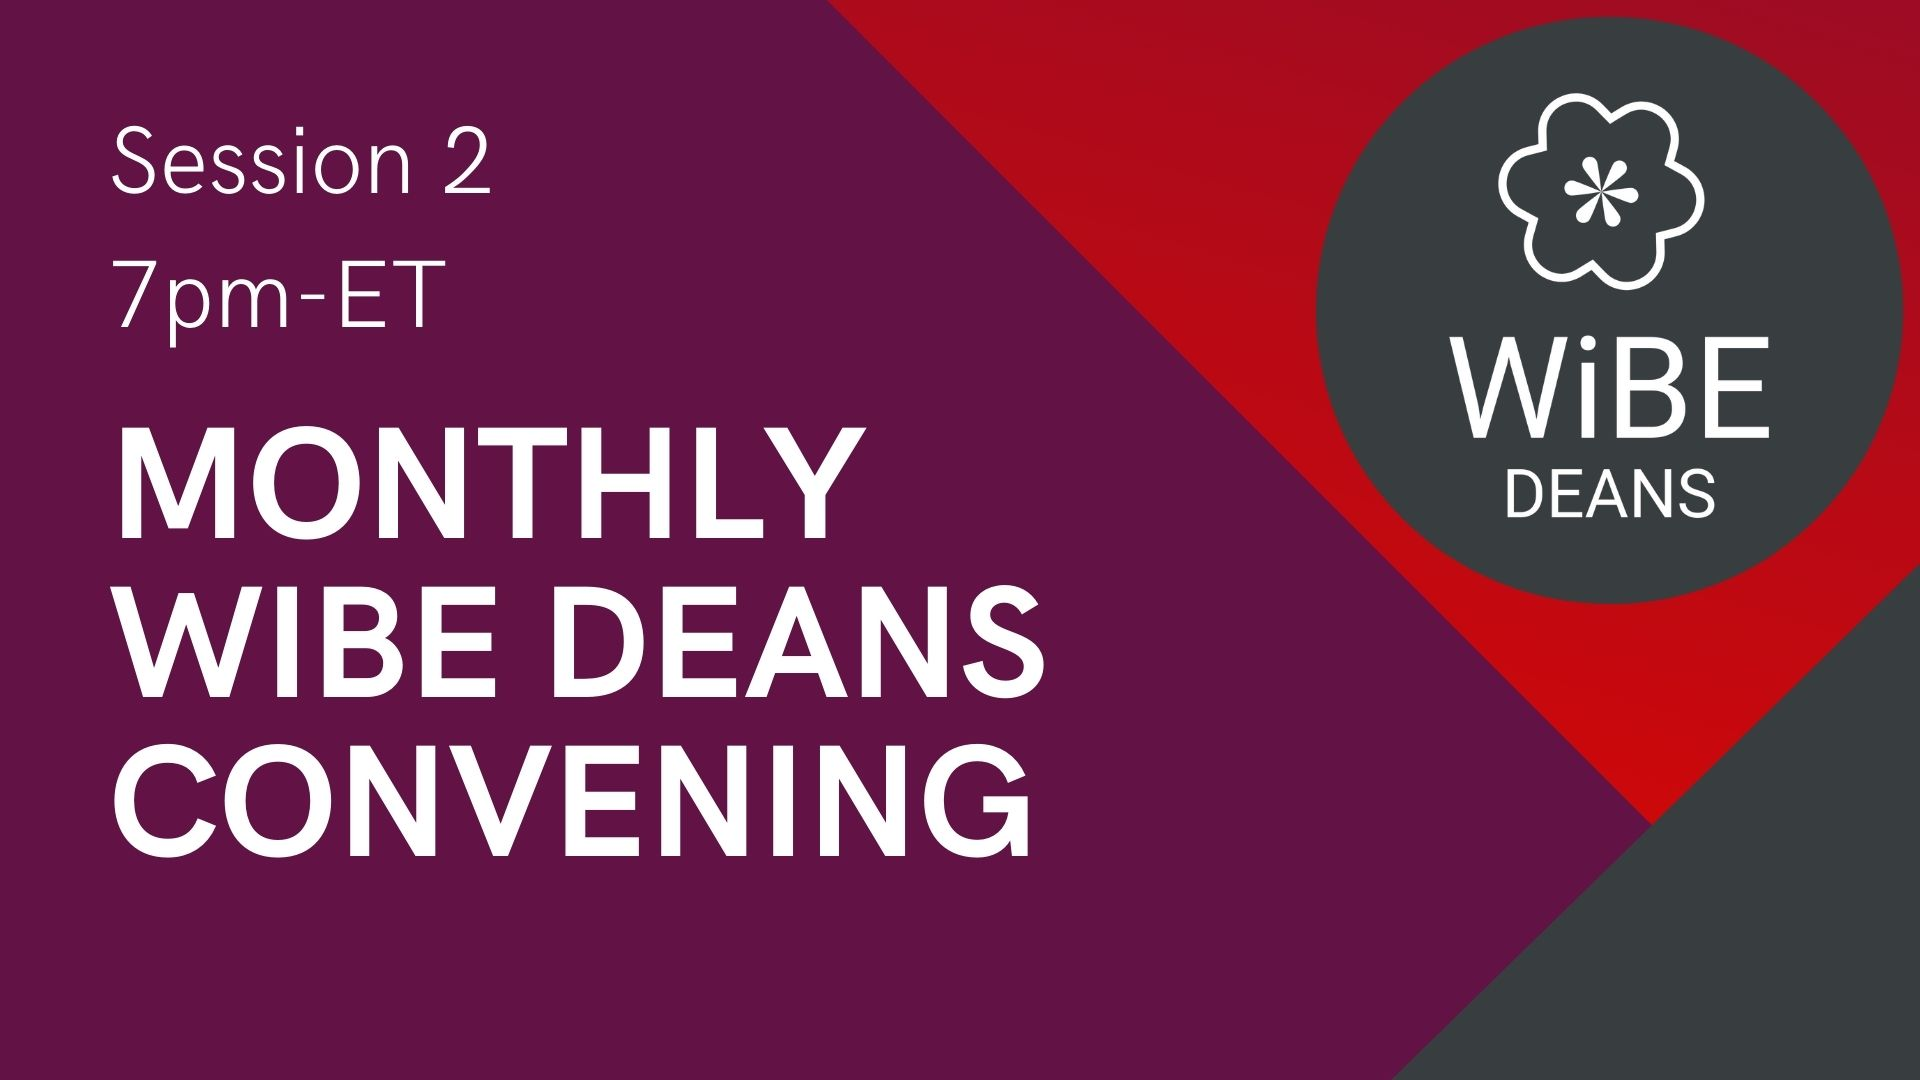 DEANS Session 2: May 20 Monthly Convening